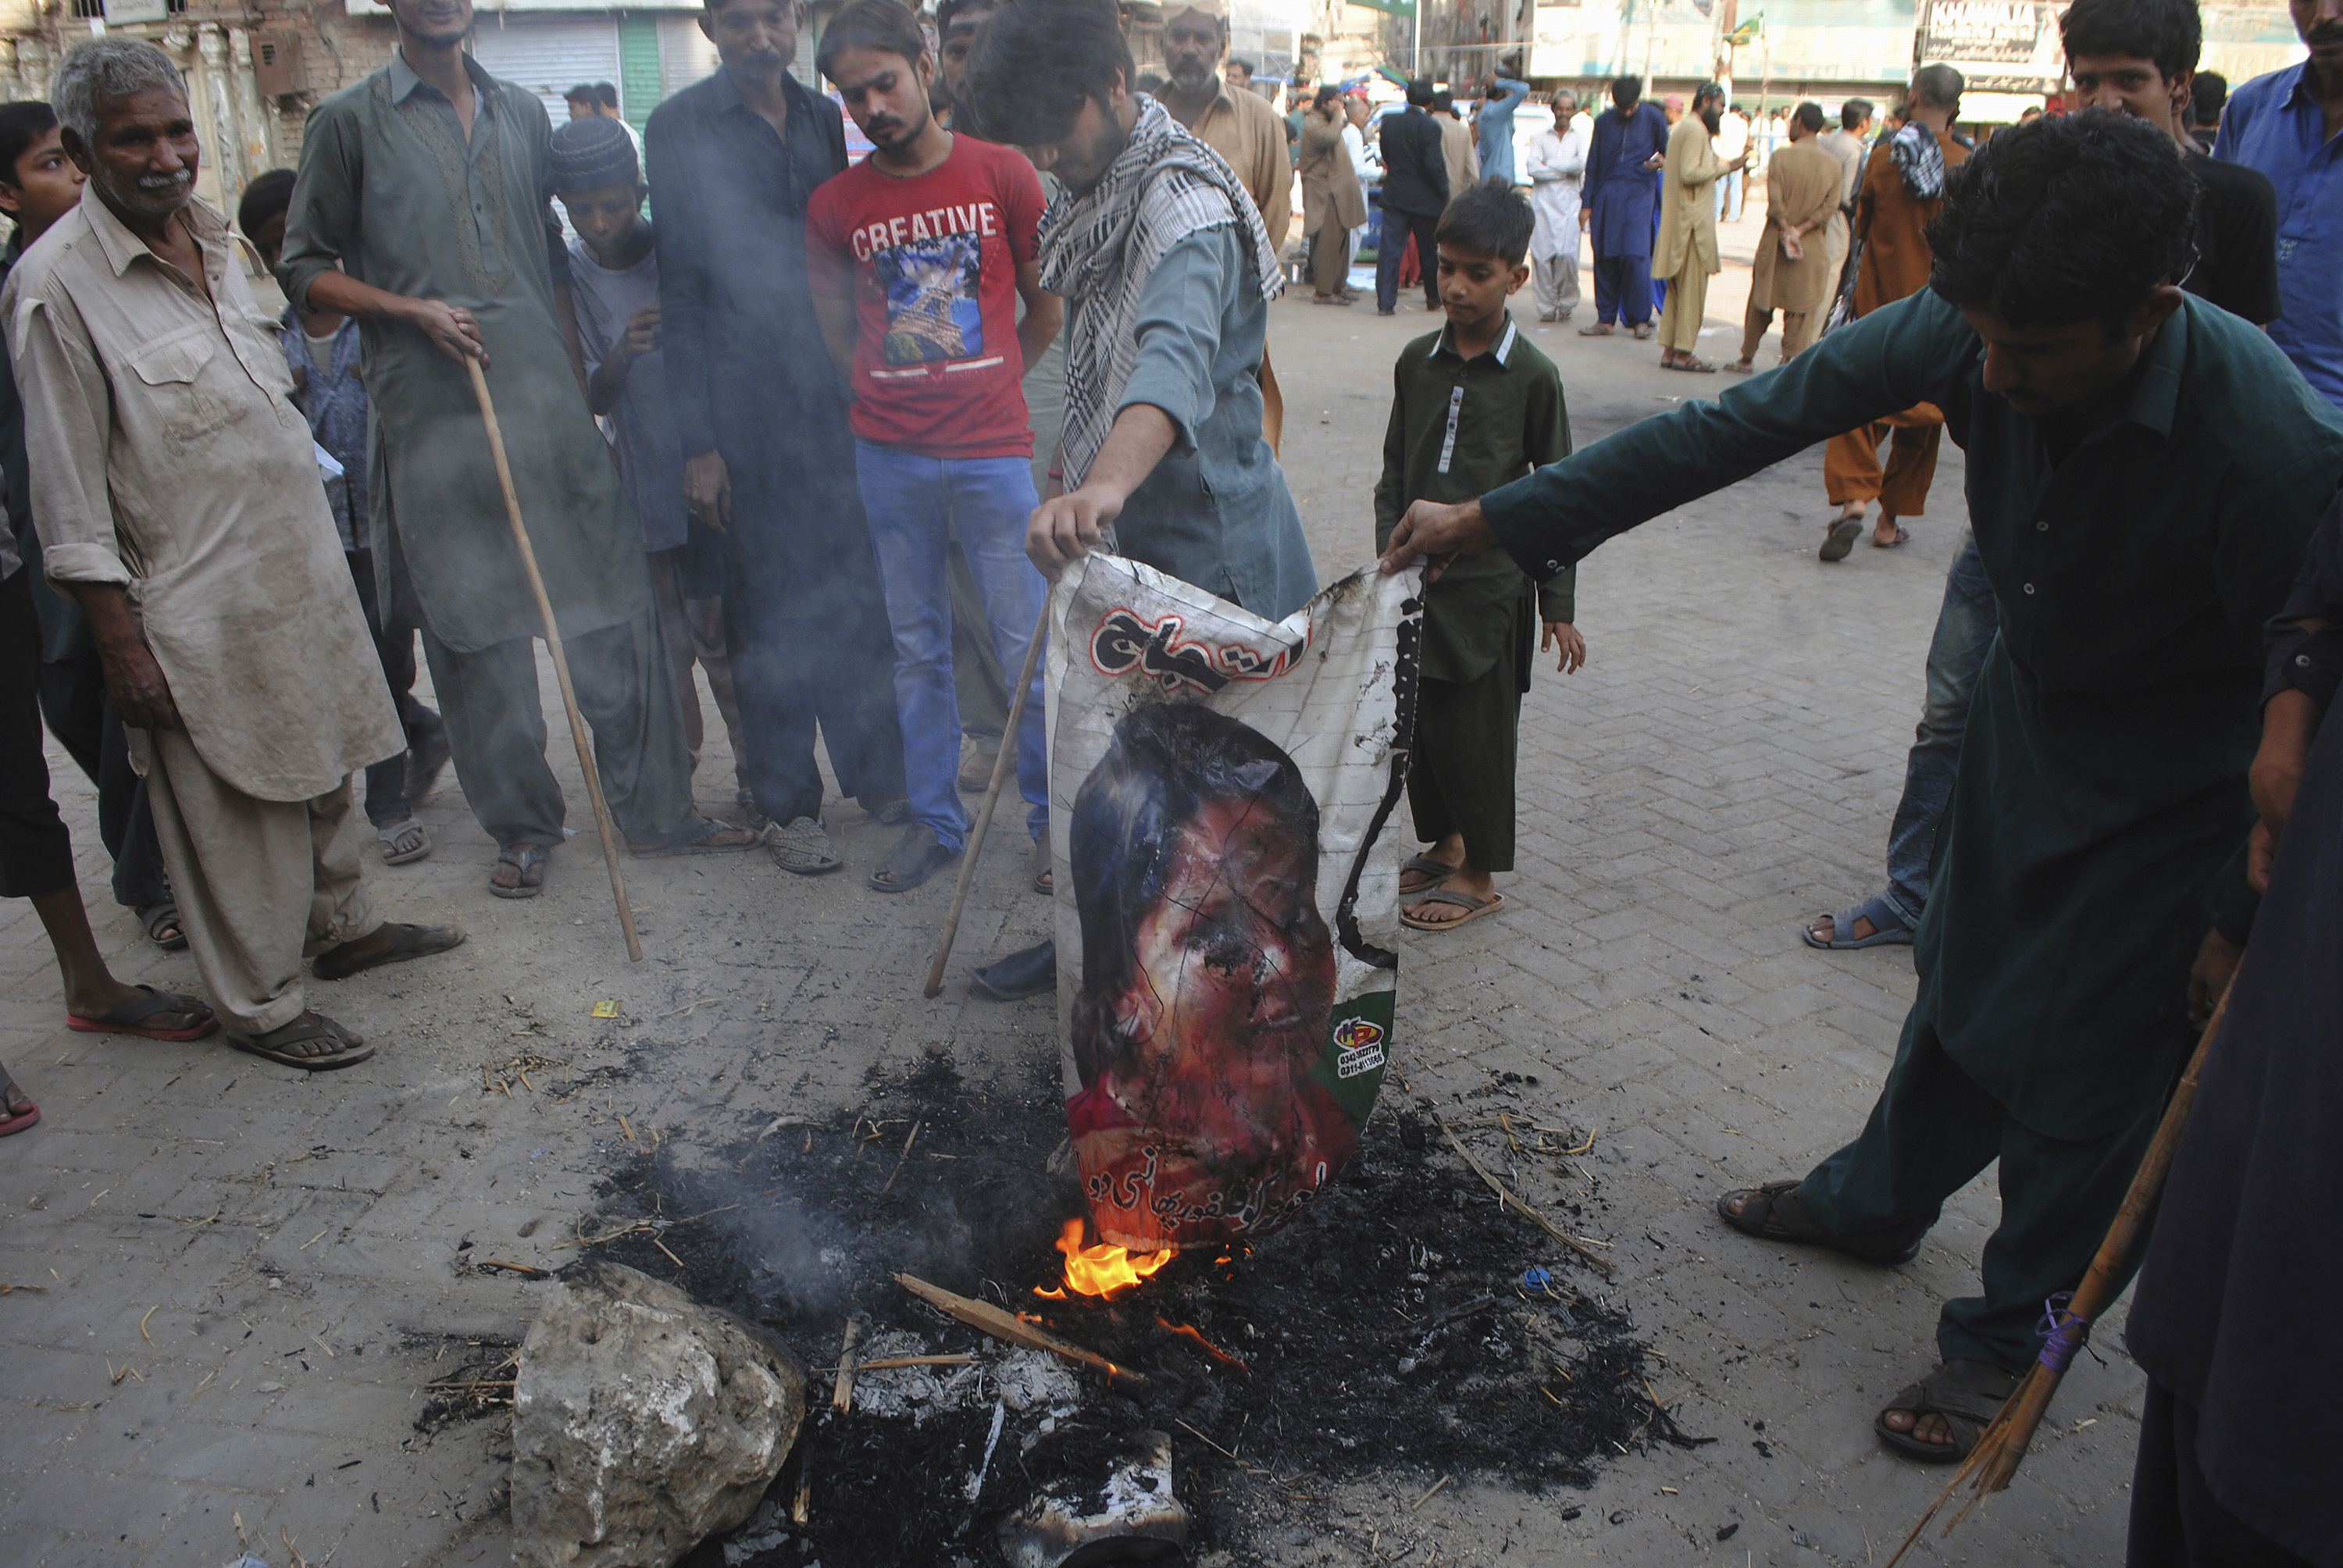 FILE - In this Nov. 1, 2018, file photo, Pakistani protesters burn a poster image of Christian woman Aasia Bibi, in Hyderabad, Pakistan. The Christian woman acquitted after eight years on death row for blasphemy was released but her whereabouts in Islamabad on Thursday, Nov. 8 remained a closely guarded secret in the wake of demands by radical Islamists that she be publicly executed. (AP Photo/Pervez Masih, File)